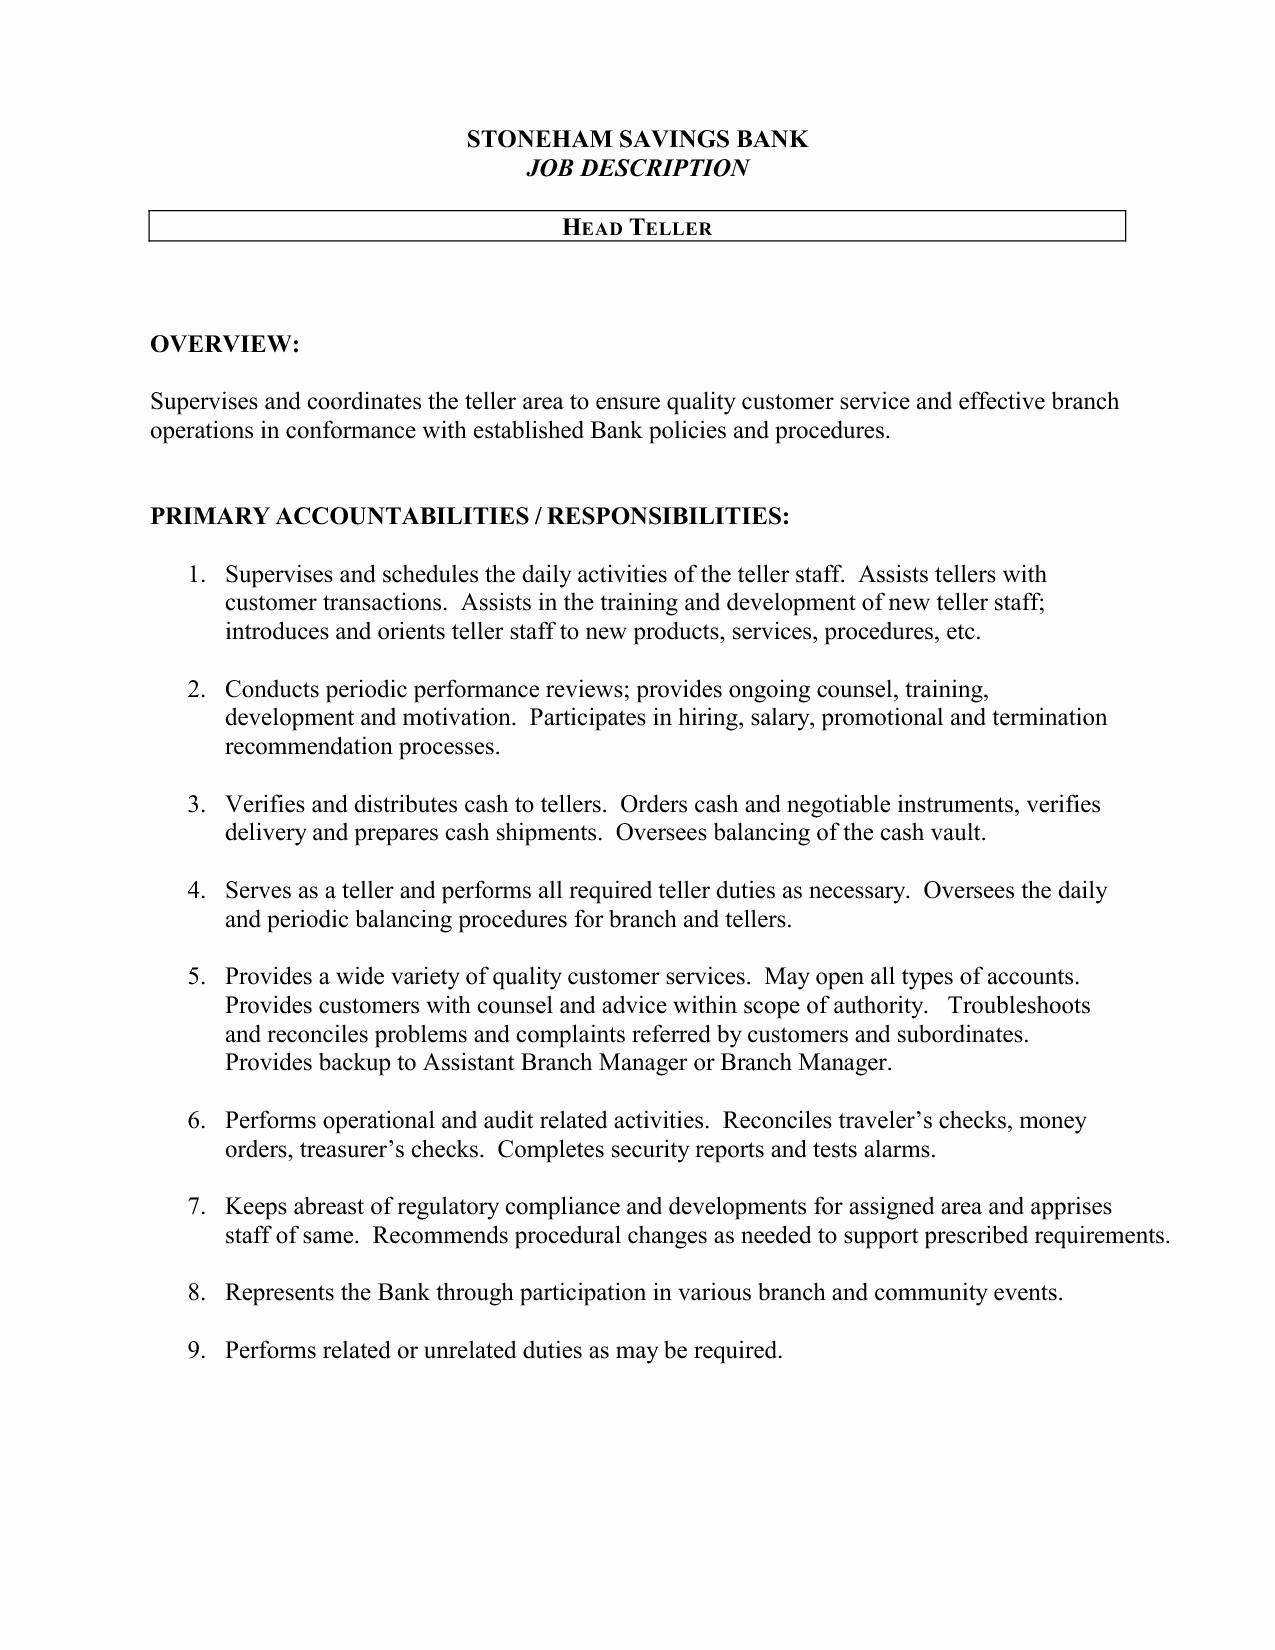 Bank Teller Job Description Resume Sample